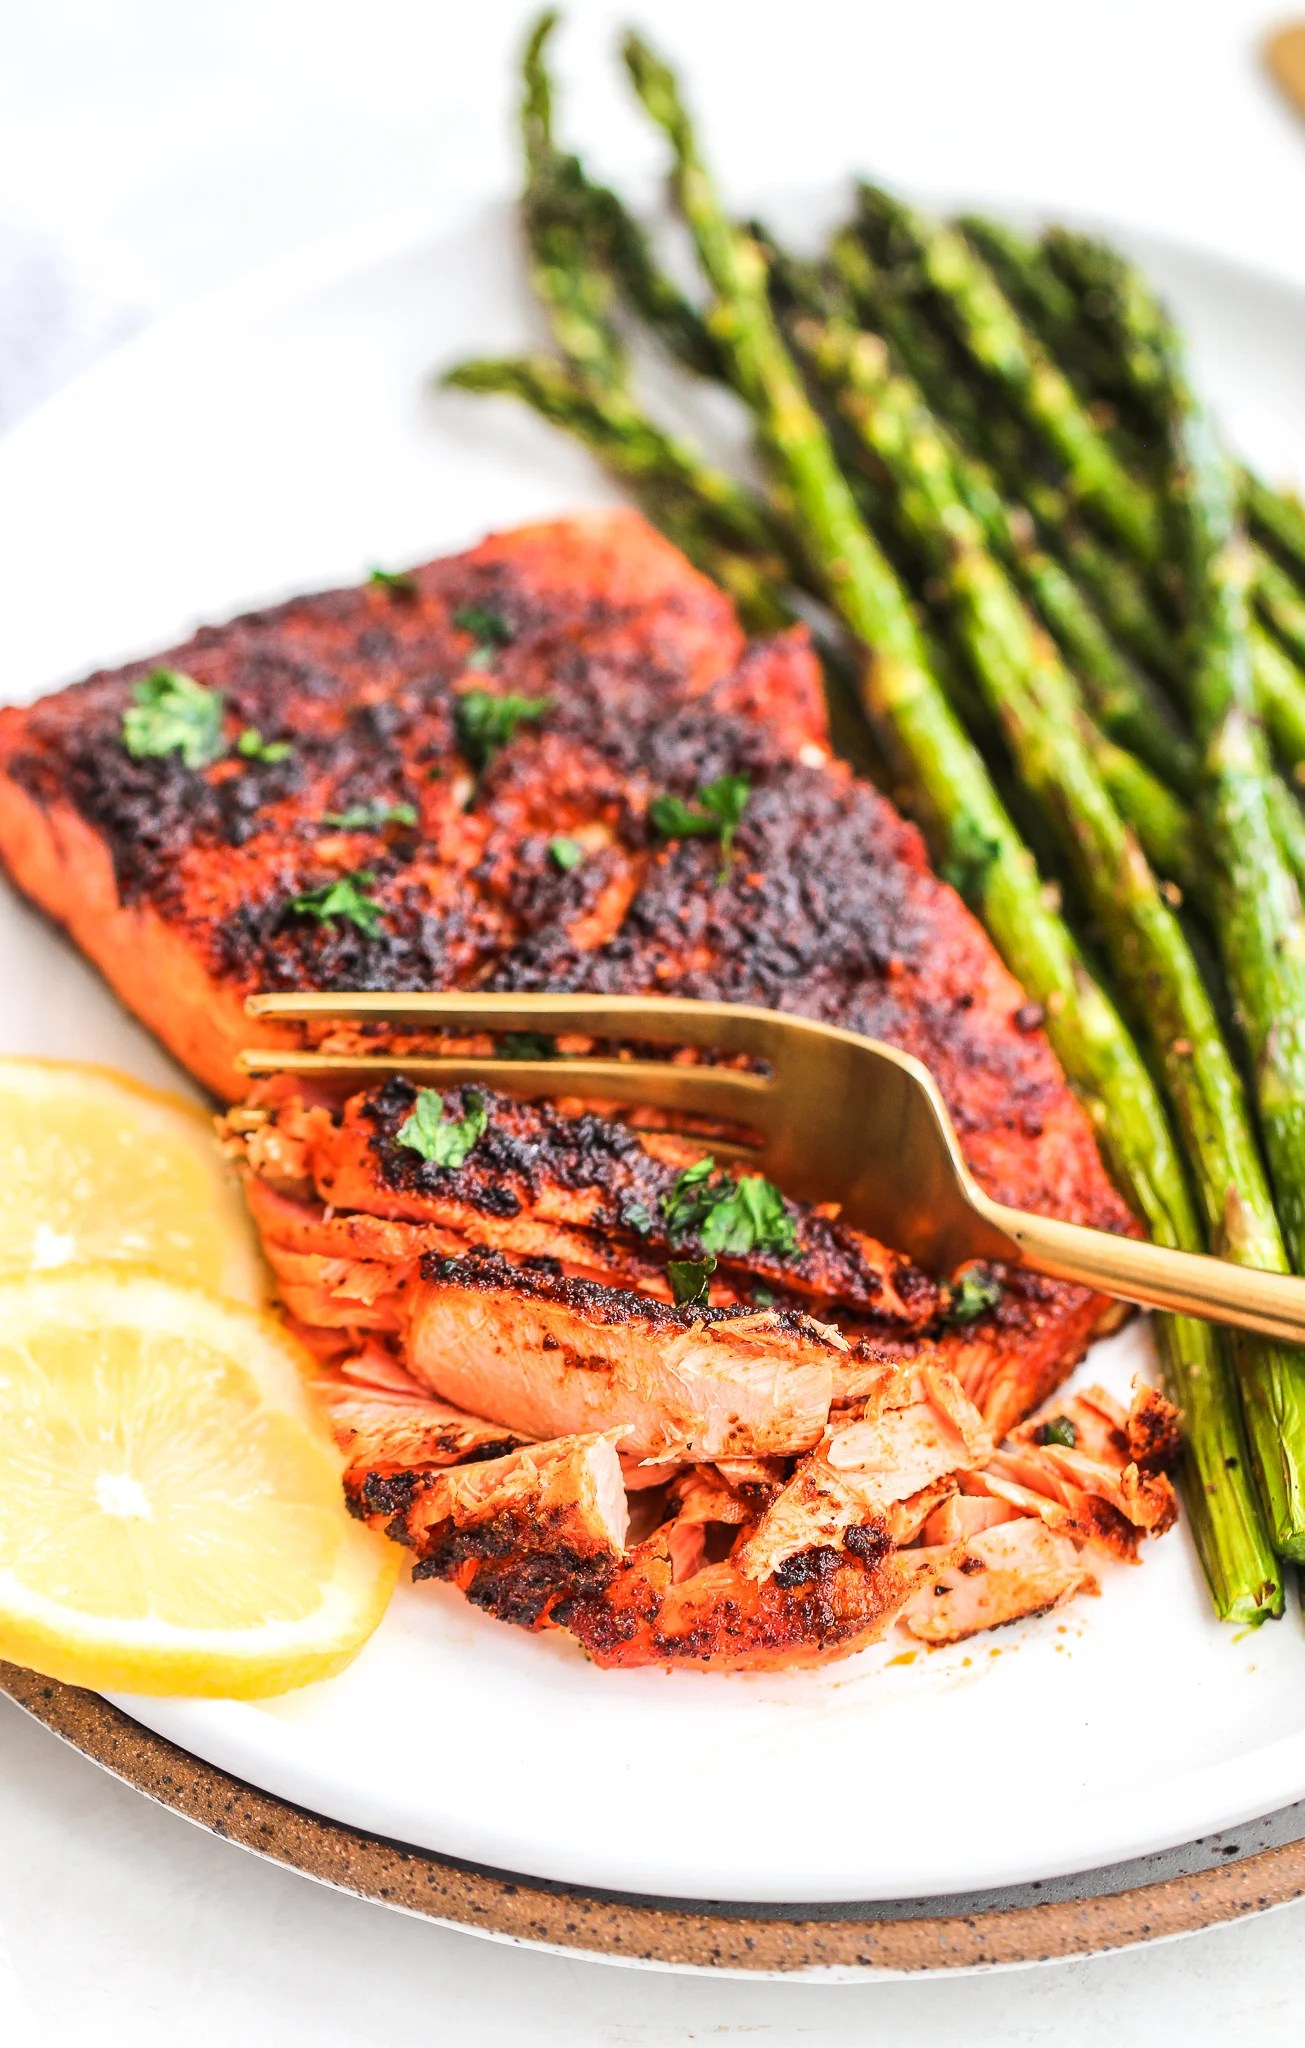 air fryer blackened salmon with a fork flaking it. There is cooked asparagus and fresh lemon on the side